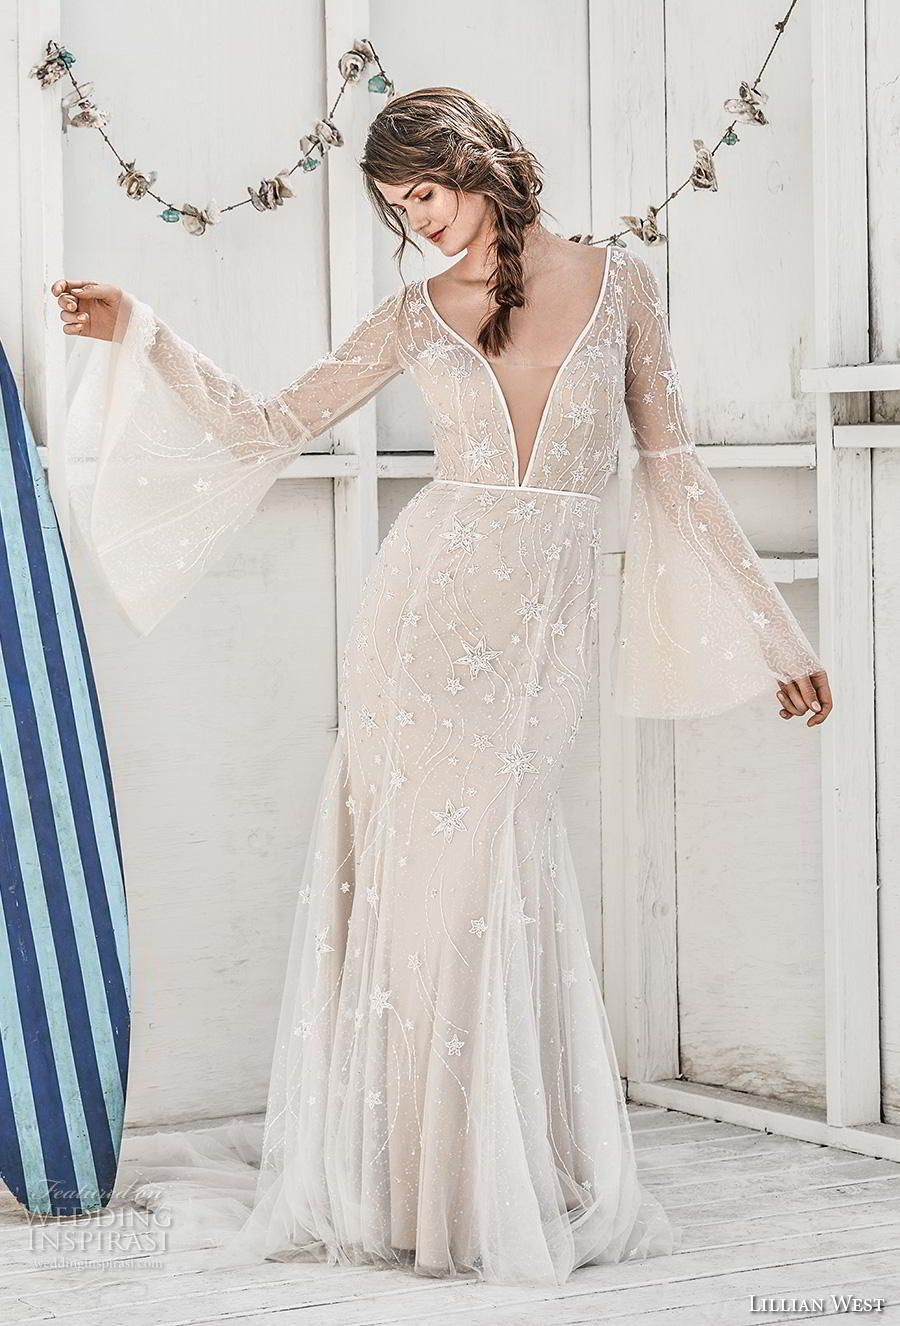 Lace wedding dress with back out january 2019 Lillian West Spring  Wedding Dresses  Wedding   Pinterest